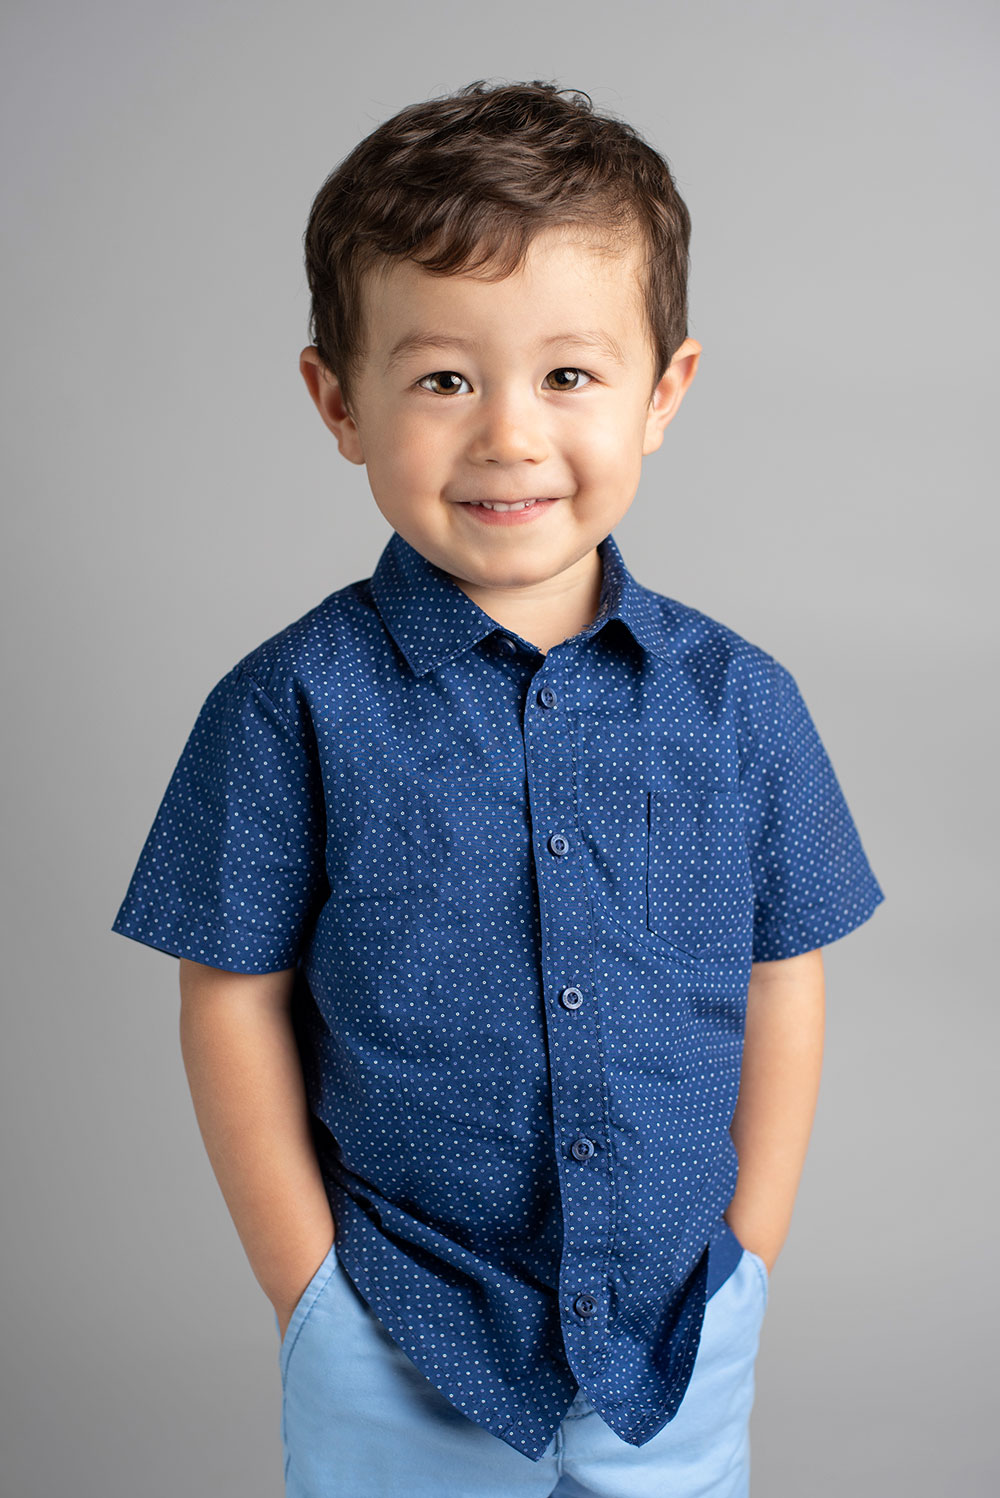 Heights-Preschool-Portraits-021.jpg